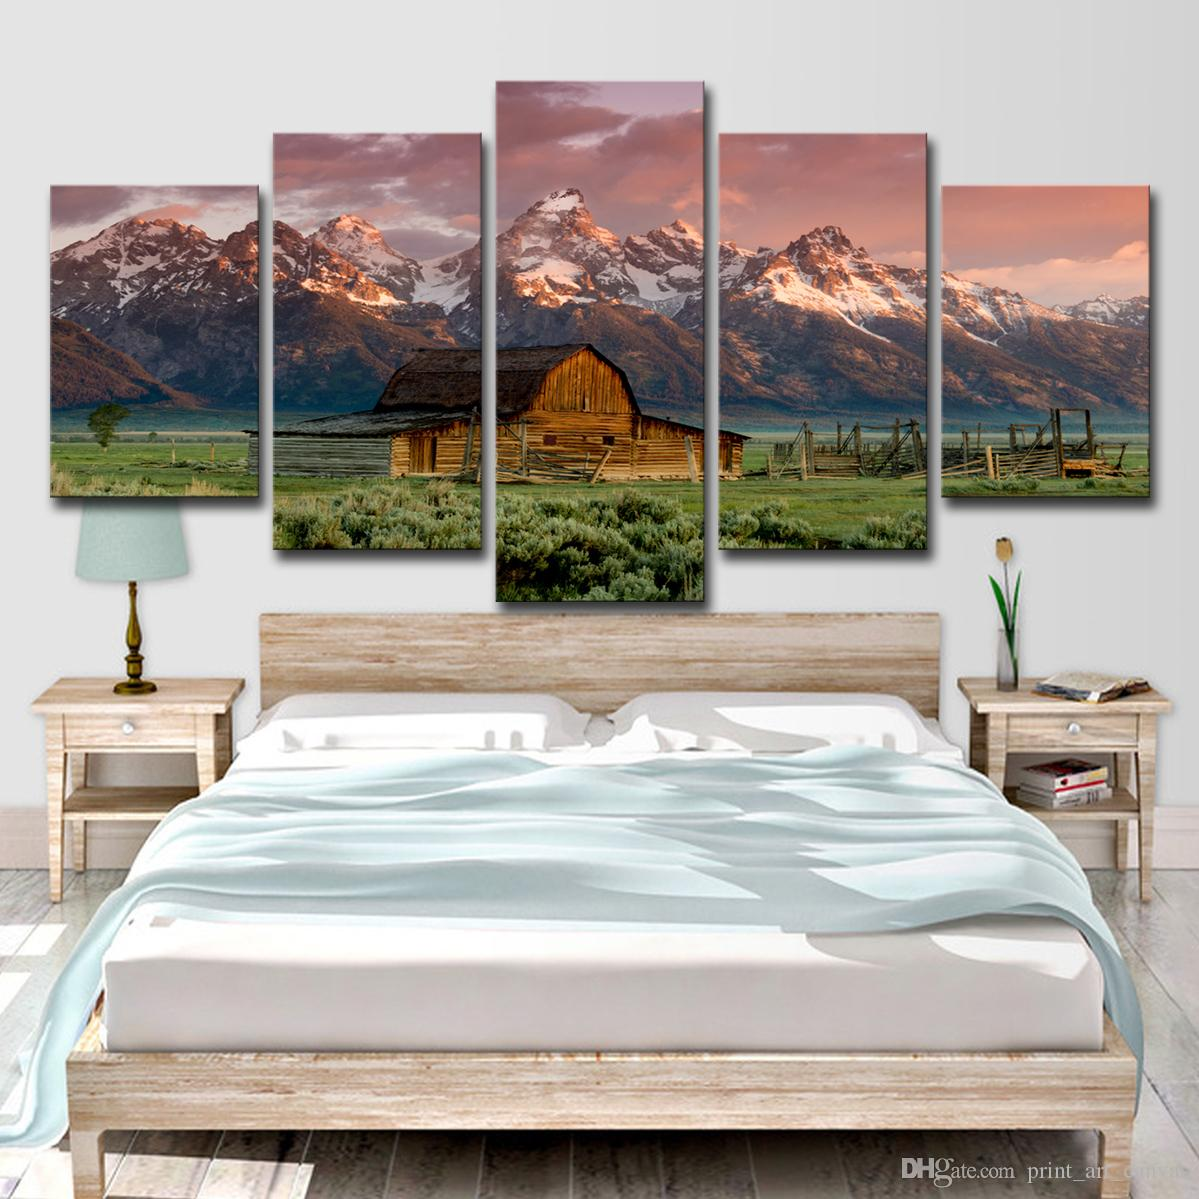 5 Pieces Home Decor Canvas Print Painting Wall Art Barn Rocky Mountains